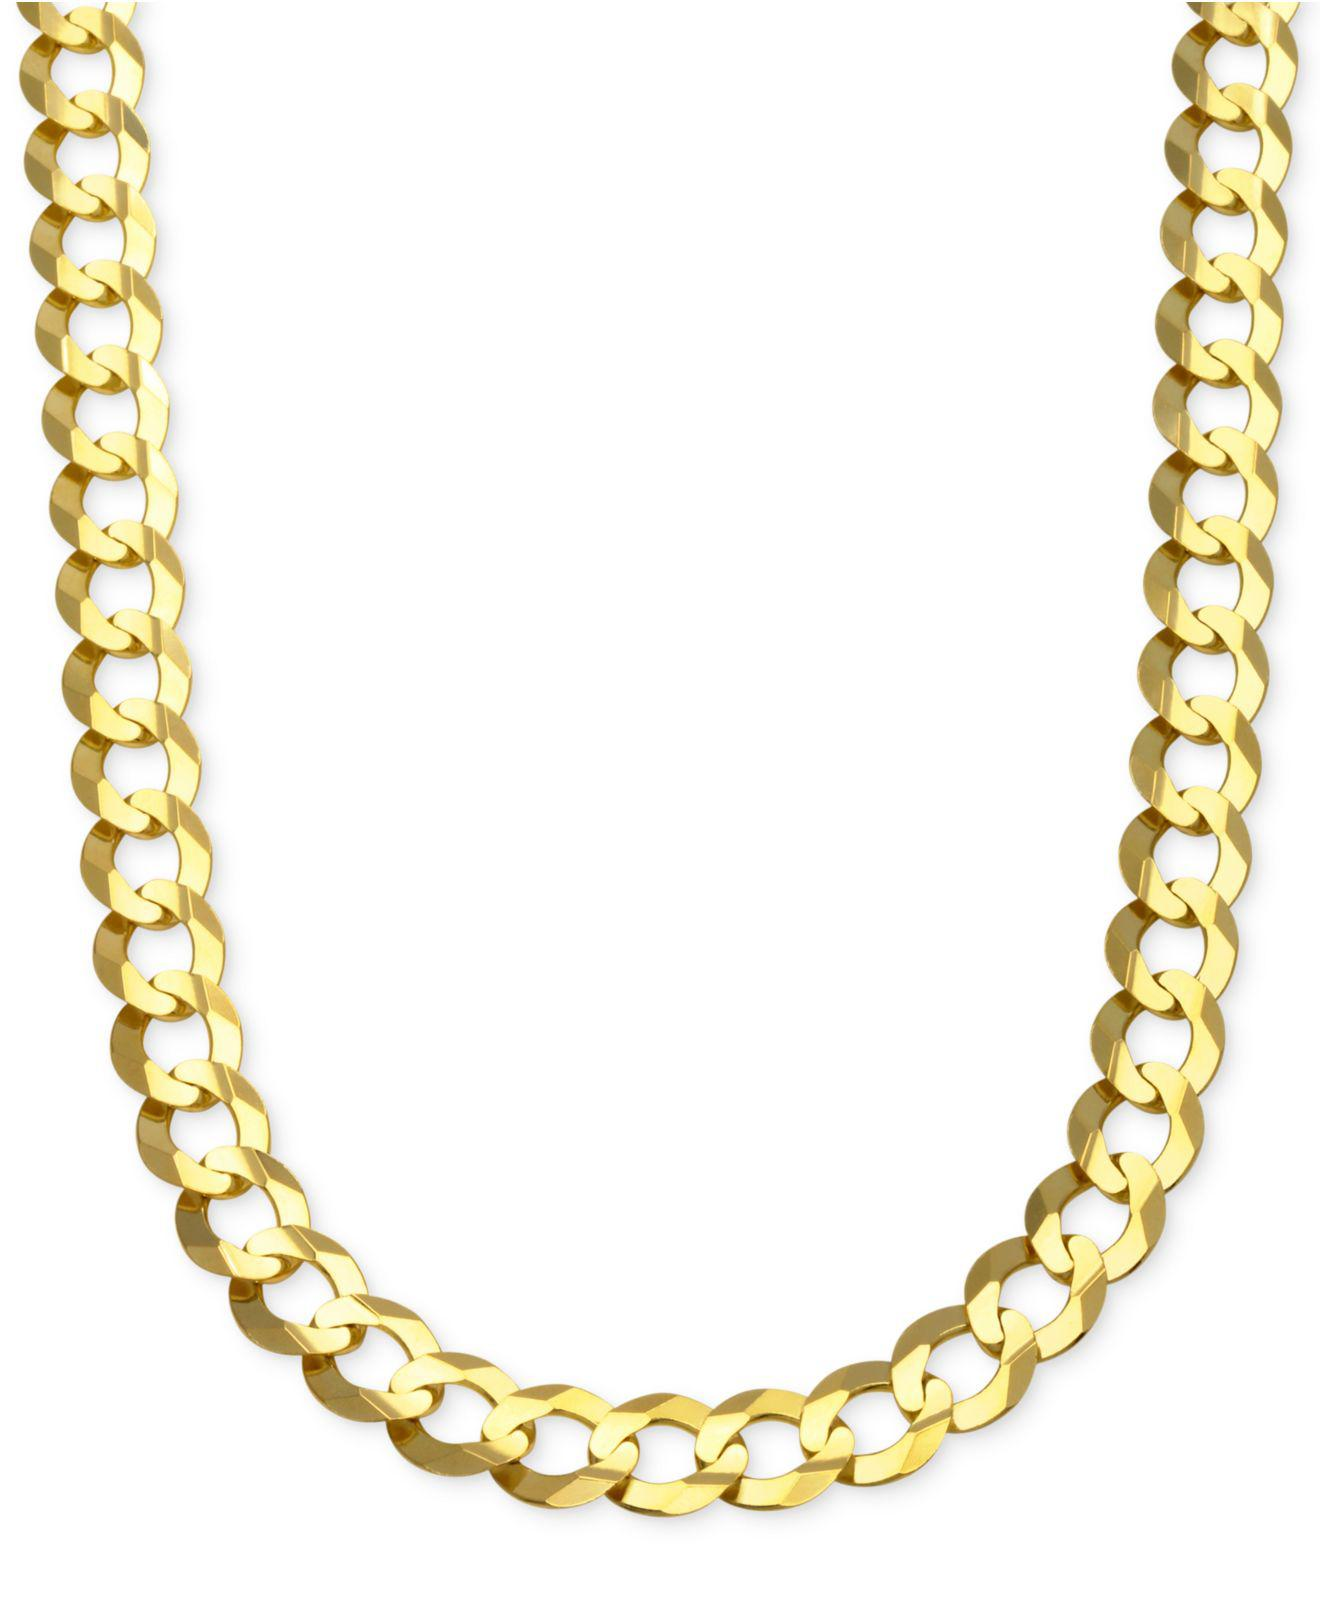 Lyst - Macy'S Cuban Chain Link Necklace In 10k Gold in ...